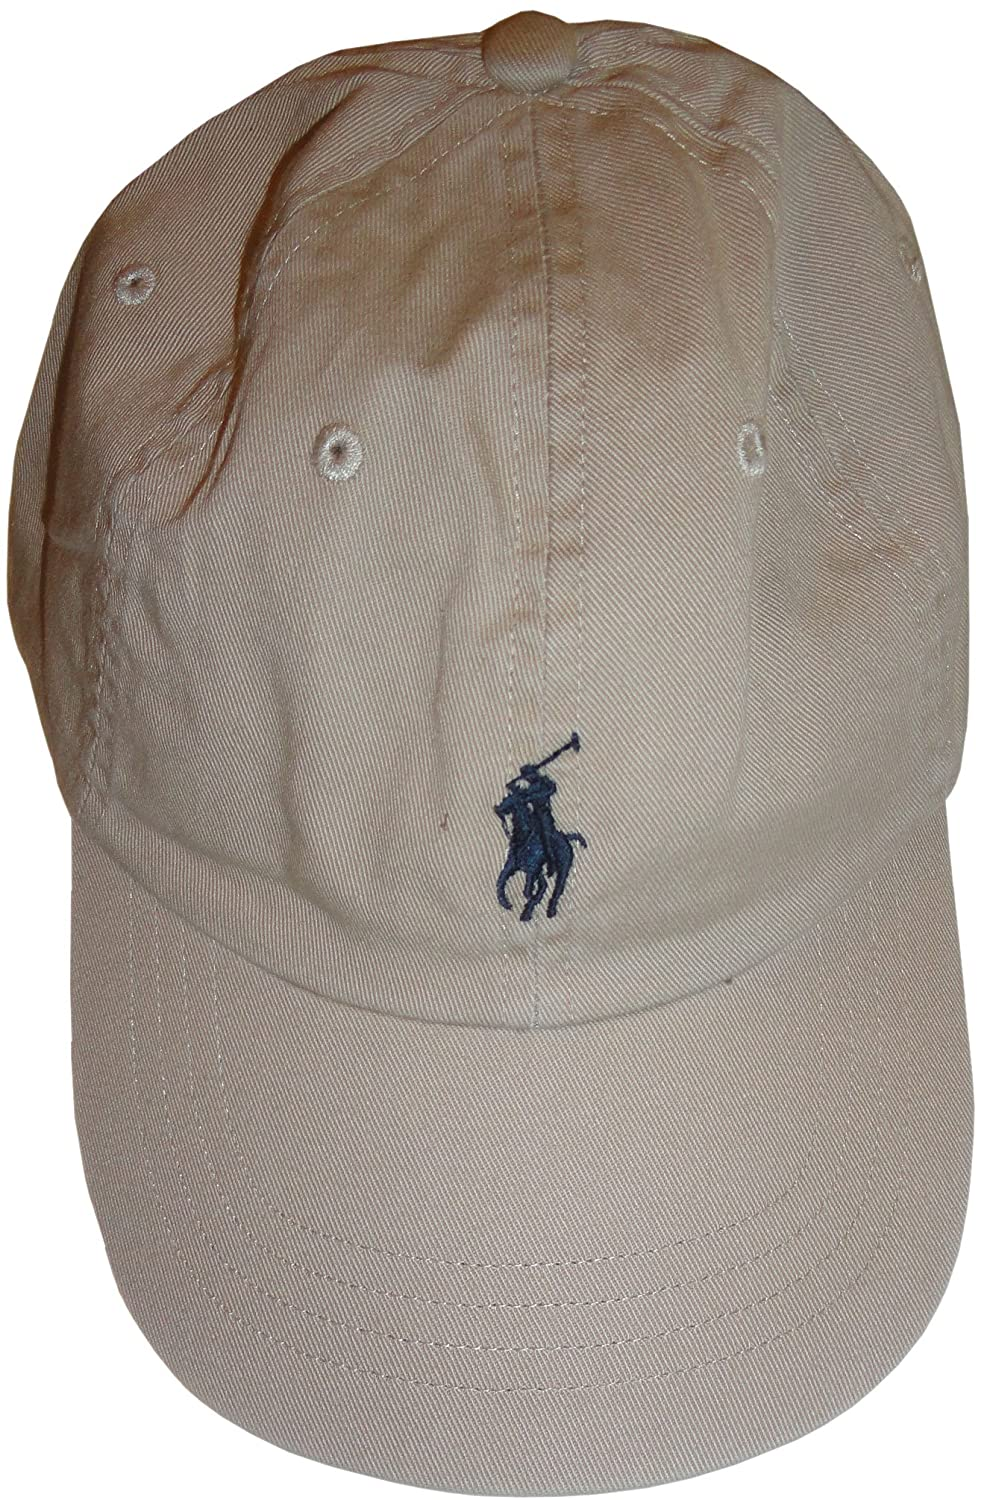 33b3840e66d3f Polo Ralph Lauren Men s Classic Chino Sports Cap One Size Blue at Amazon  Men s Clothing store  Baseball Caps